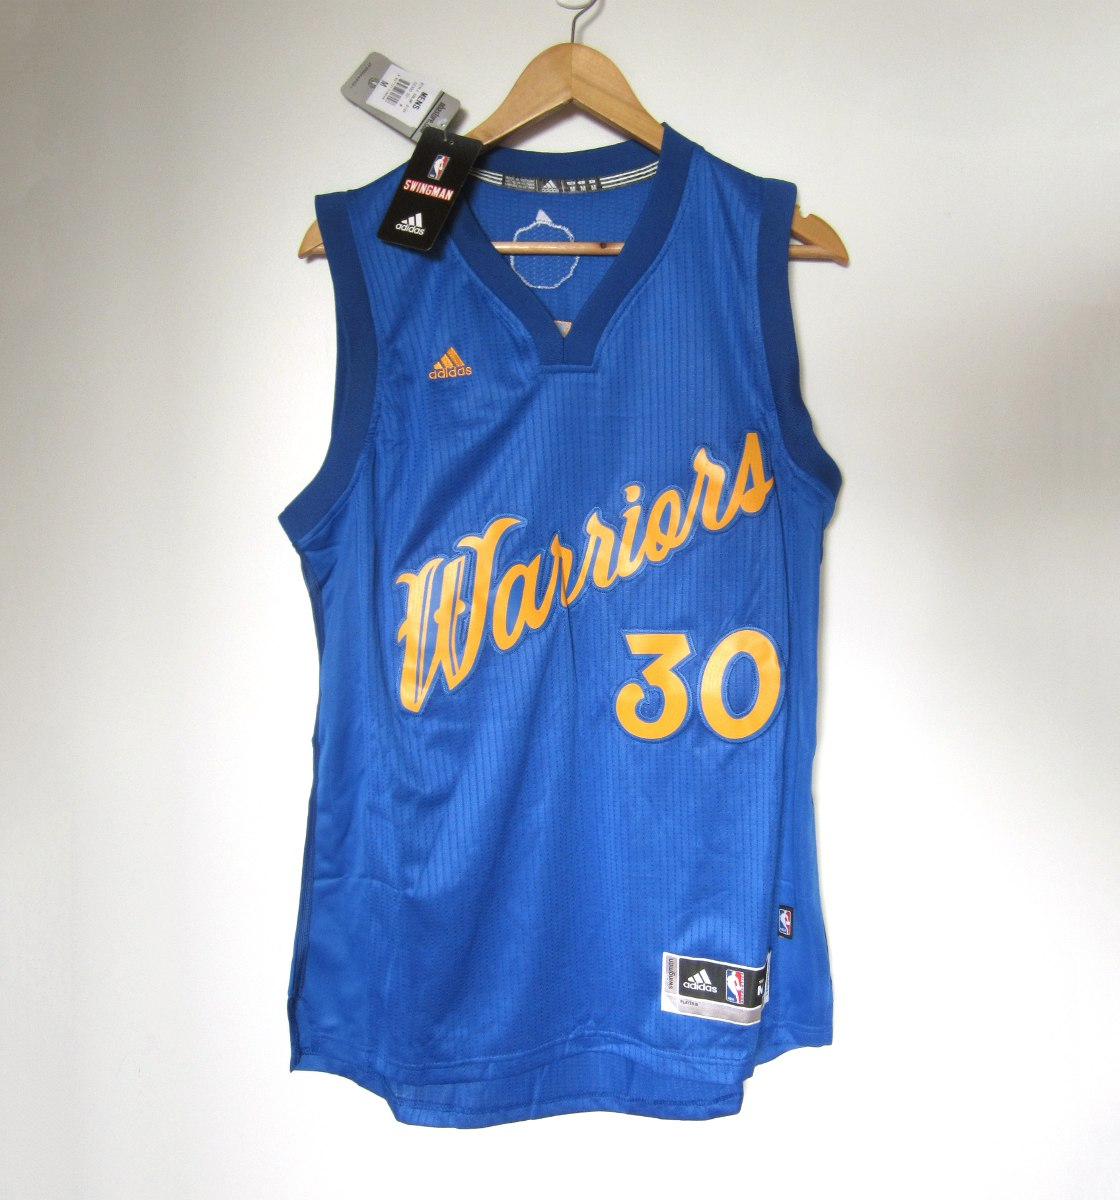 0f629e8eb camisa nba stephen curry  30 golden state warriors regata. Carregando zoom.